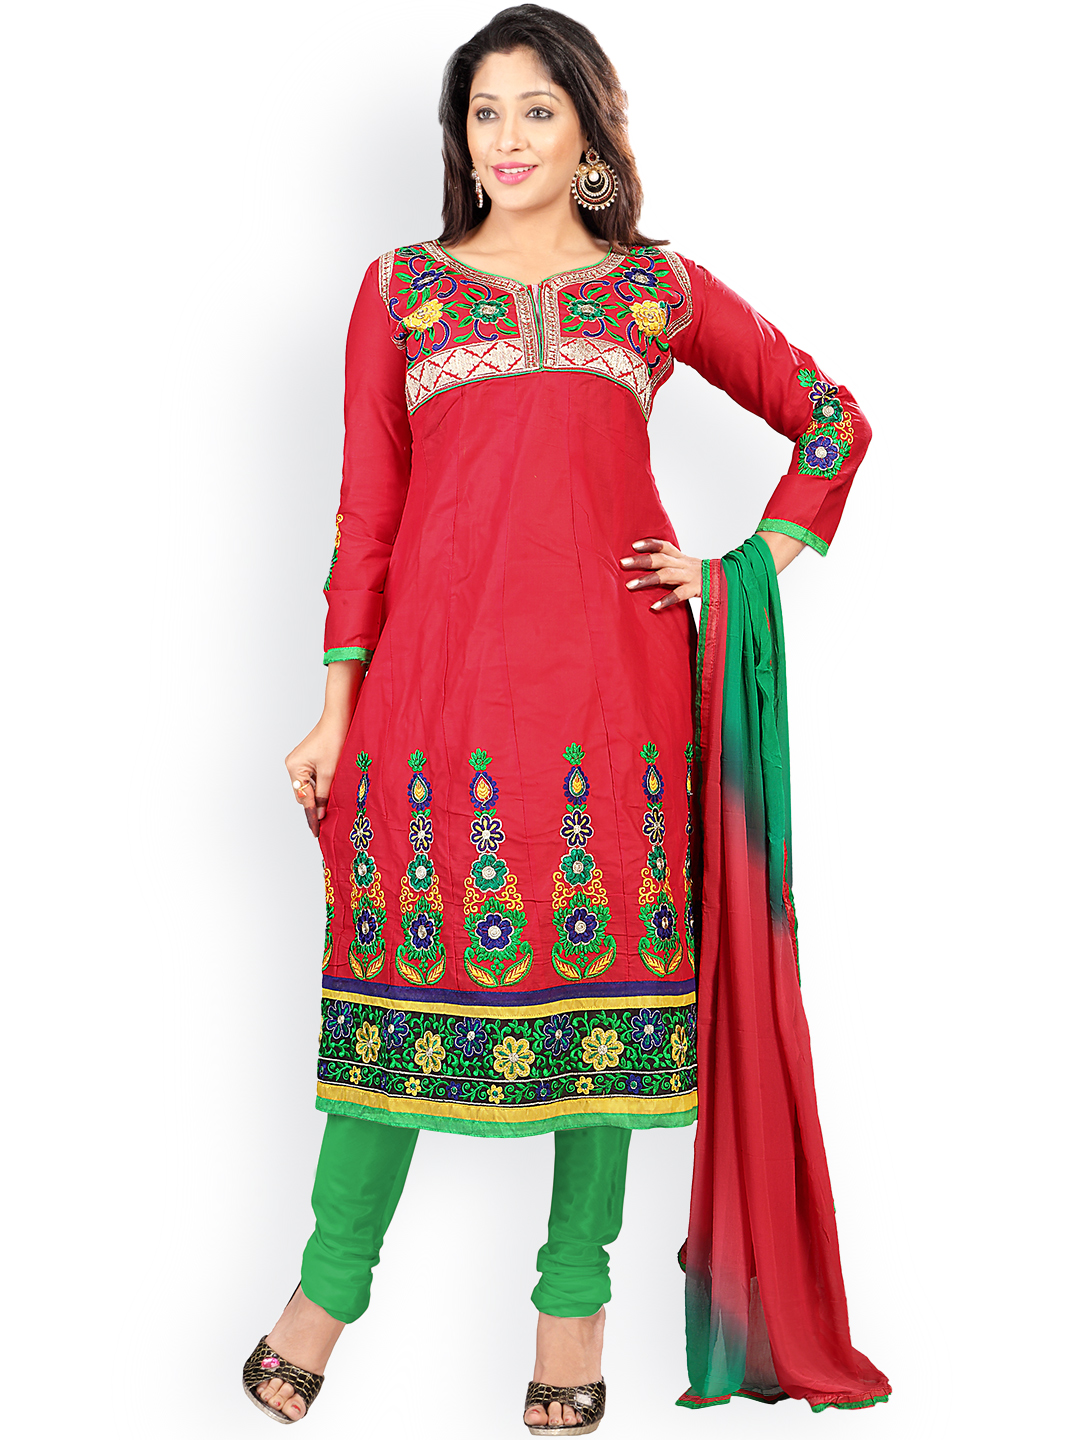 Florence Red & Green Embroidered Cotton Semi-Stitched Dress Material image